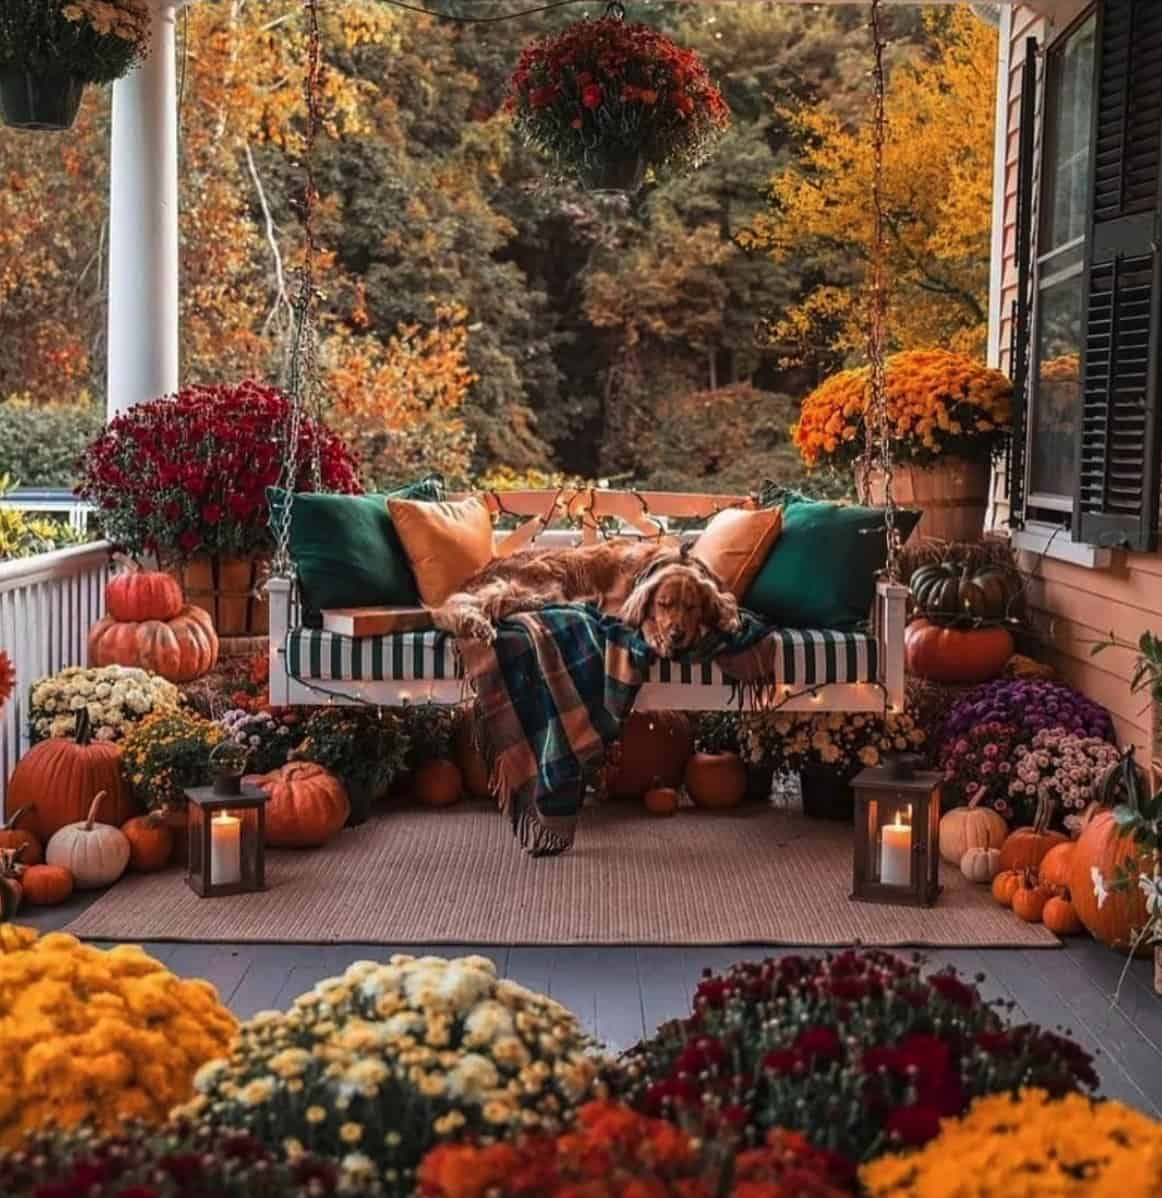 fall-porch-decorating-ideas-with-pumpkins-mums-and-swing